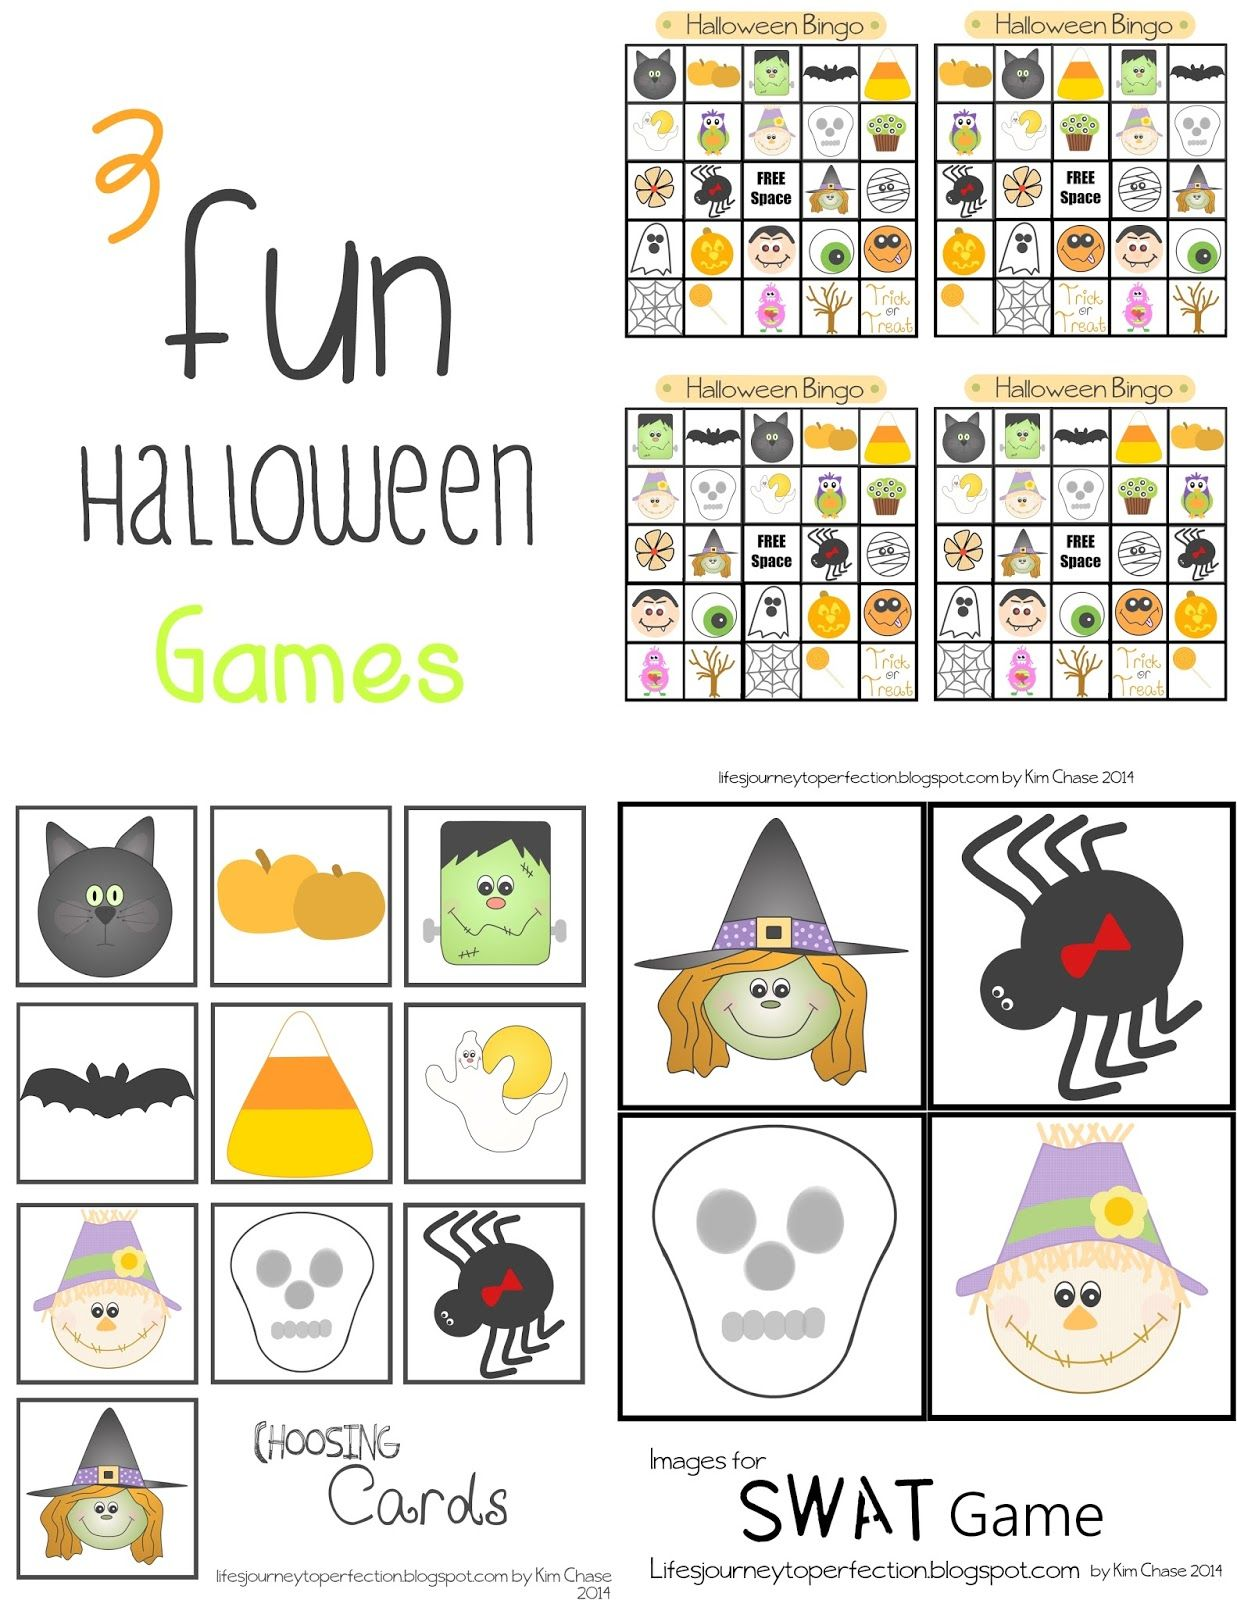 Day 9 and 10 of the 12 Days of Halloween Fun Halloween